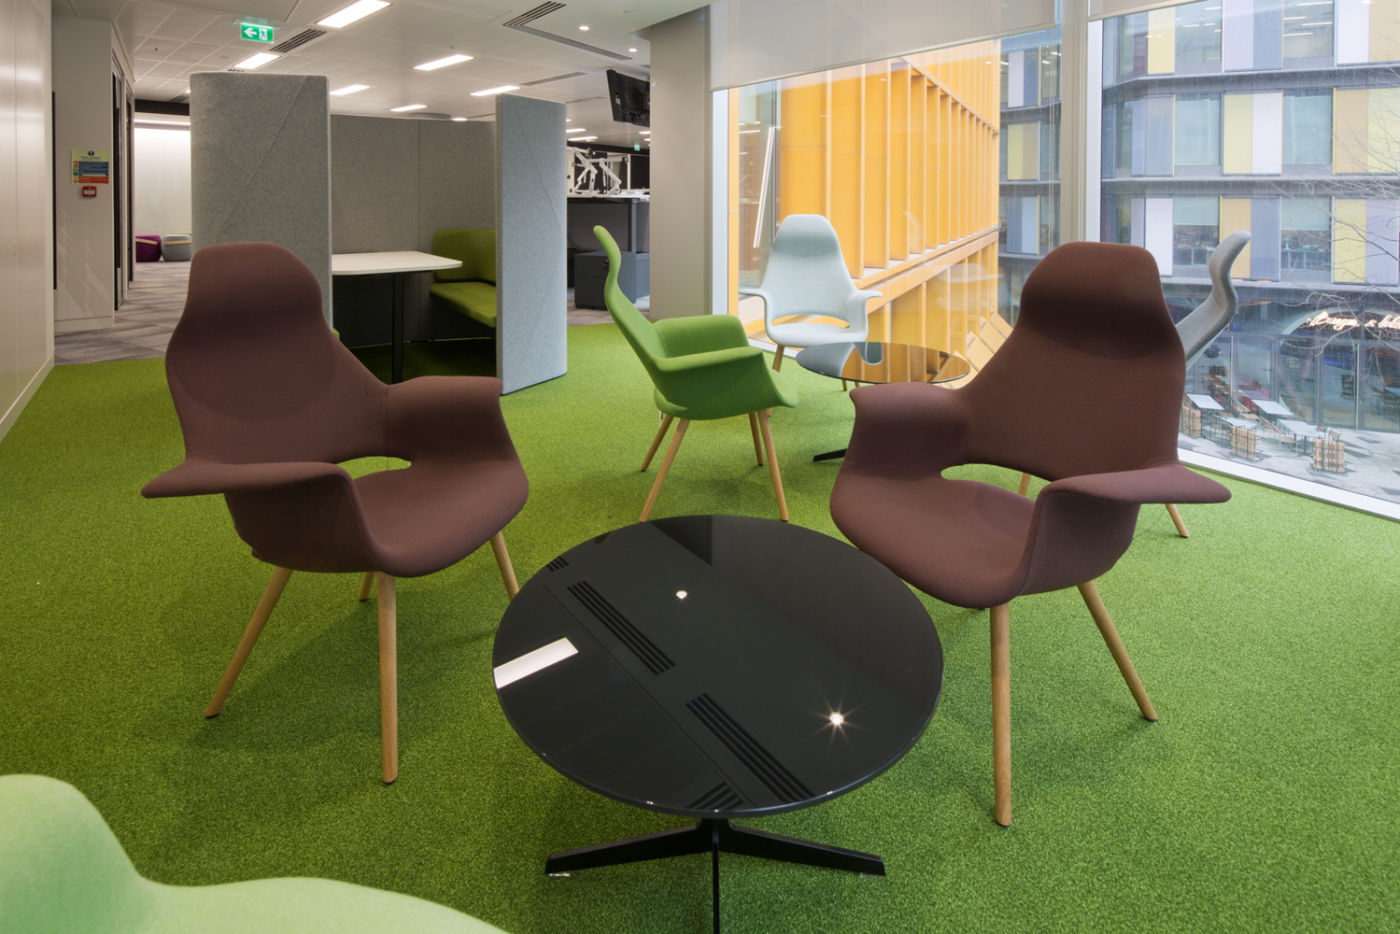 Green carpet in staff seating area